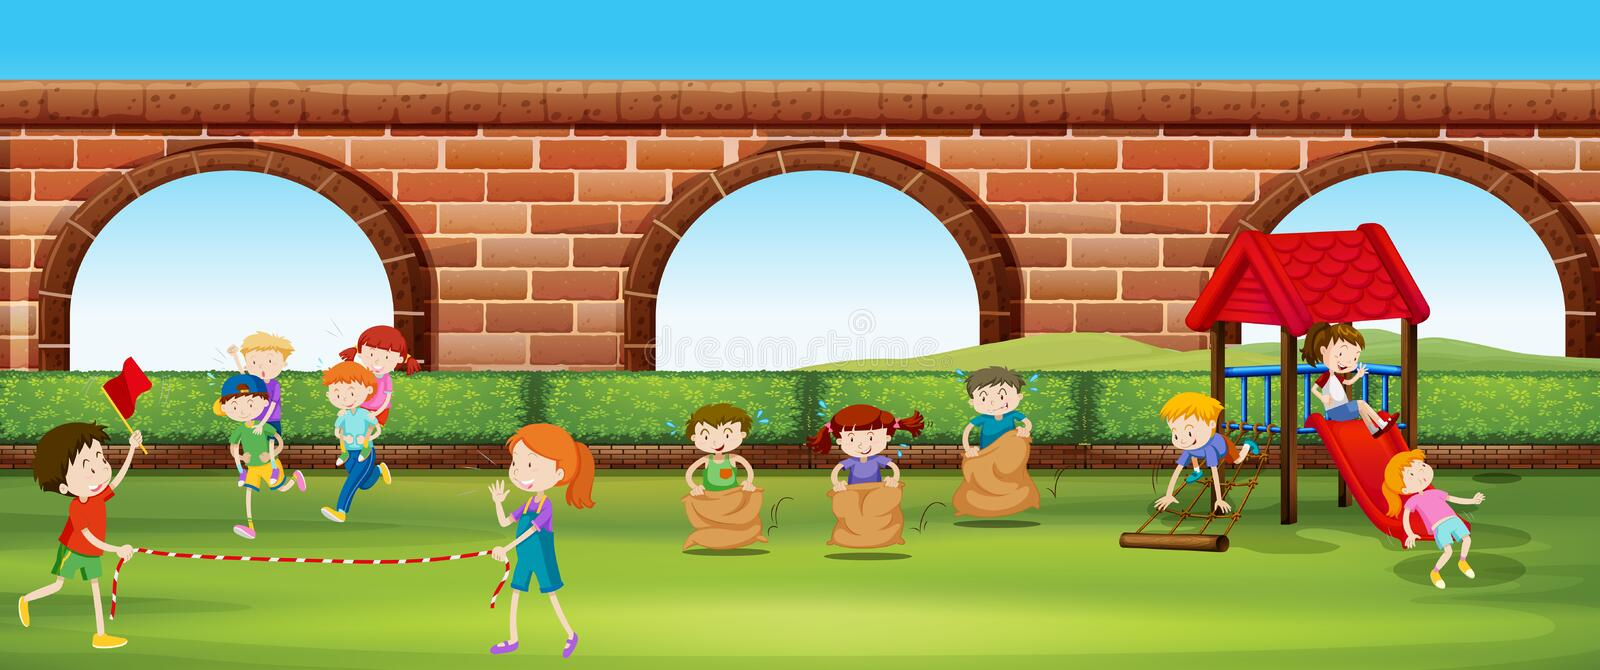 Children playing games in the park. Illustration royalty free illustration